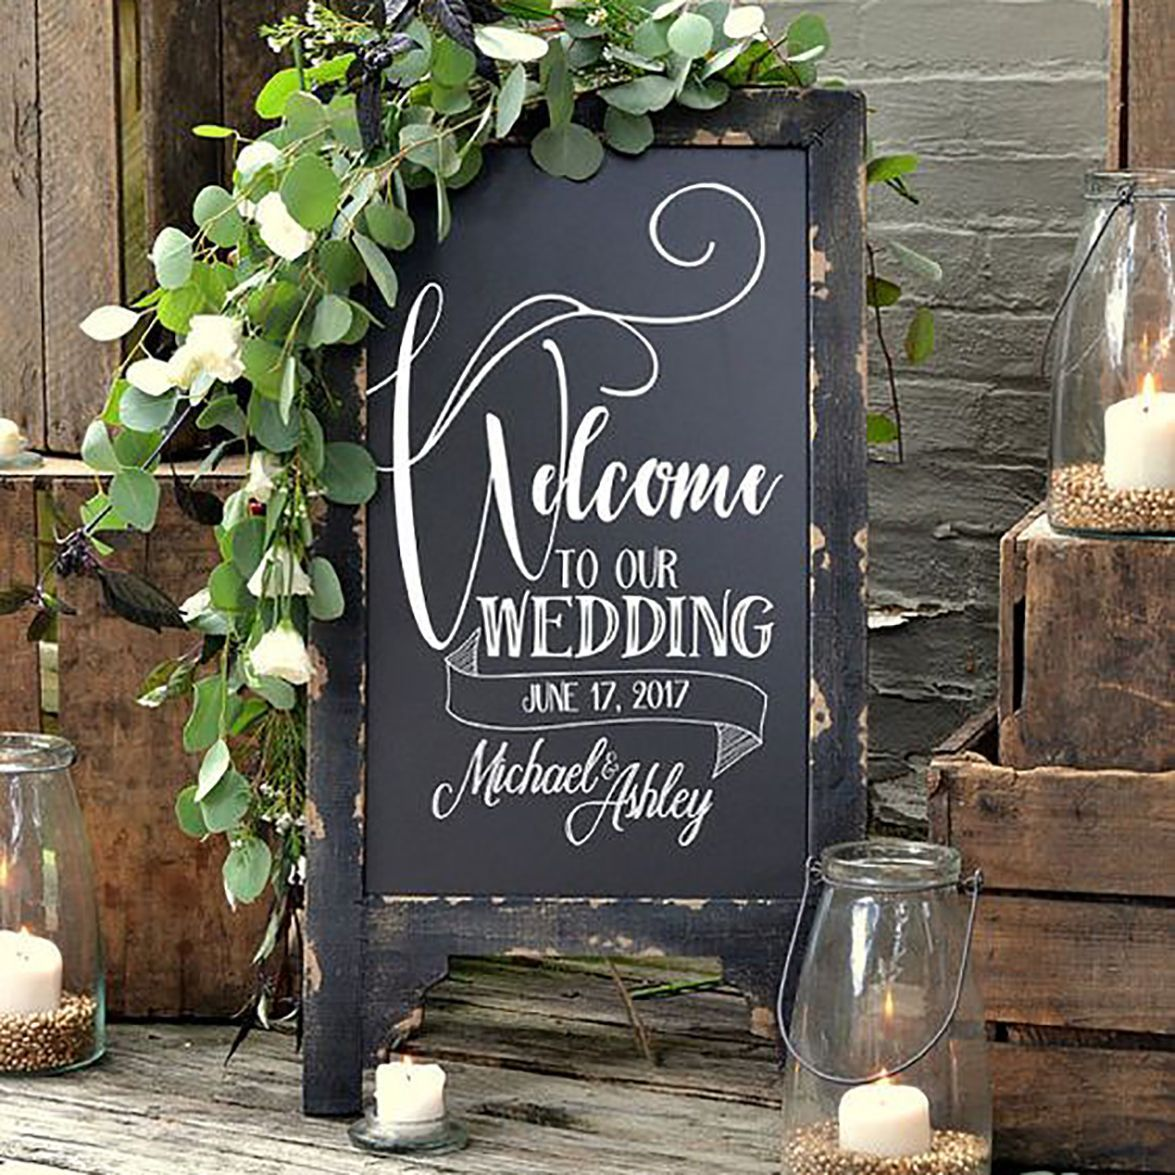 16+ Wedding welcome sign message ideas information